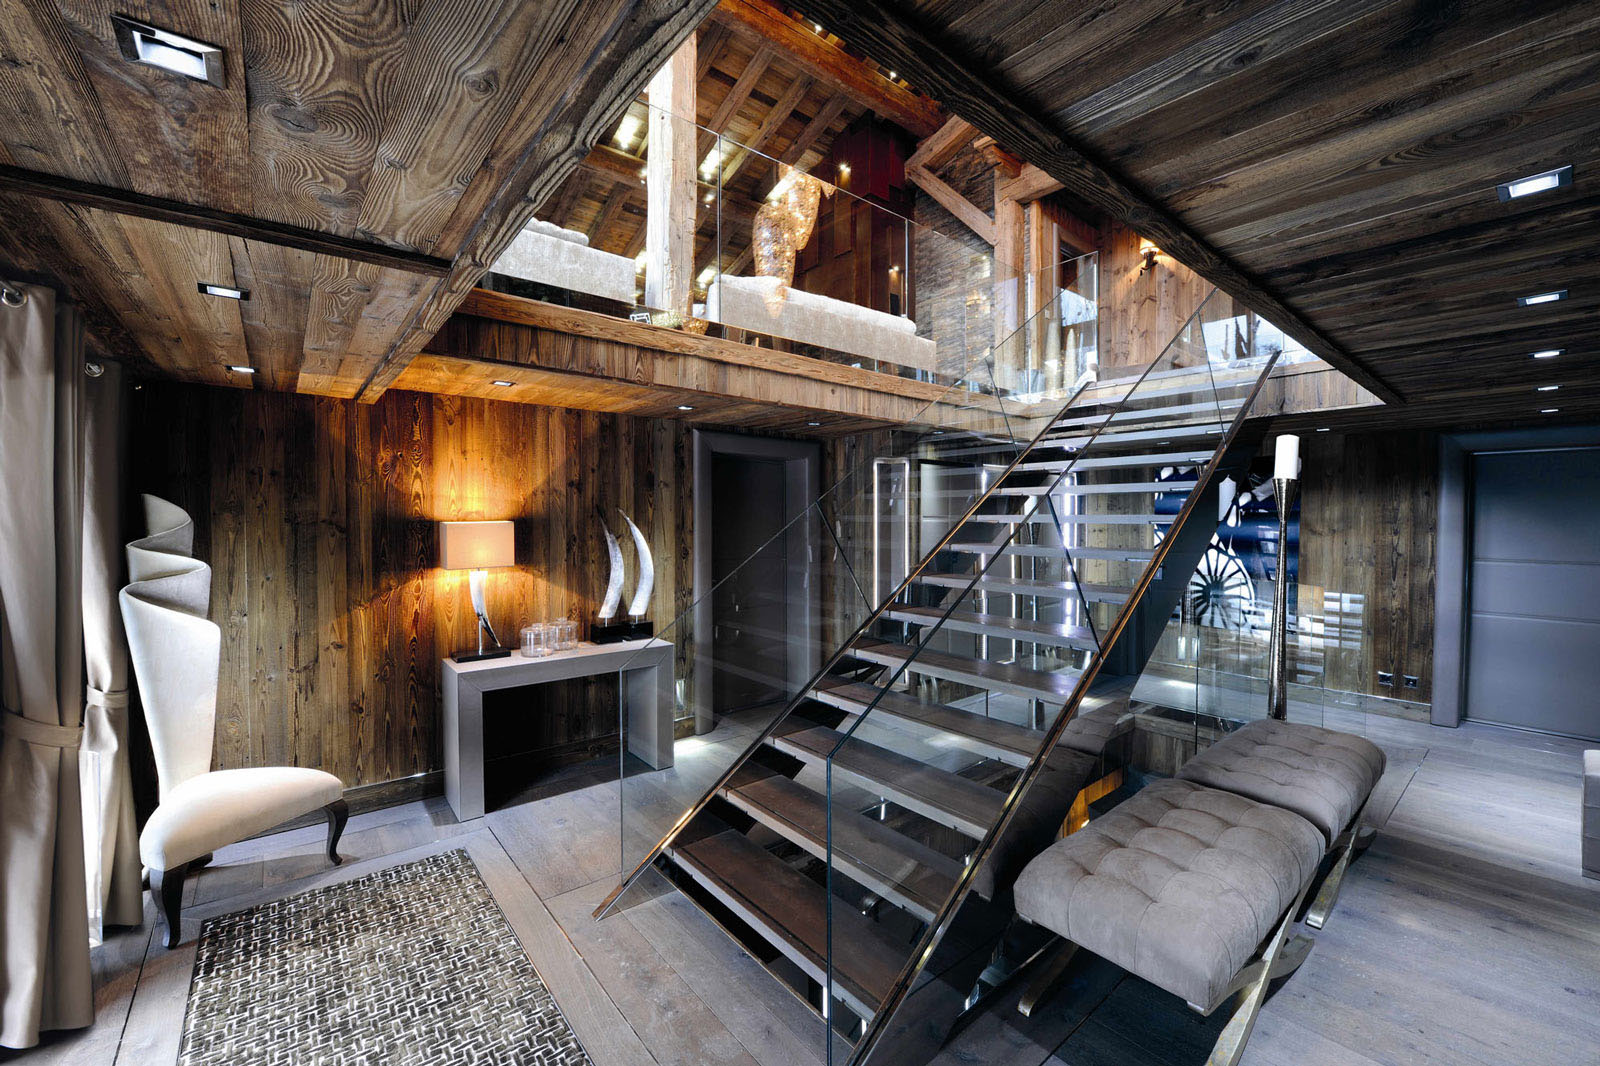 Chic modern rustic chalet in the rh ne alpes idesignarch interior design architecture - Chalet modern design ...